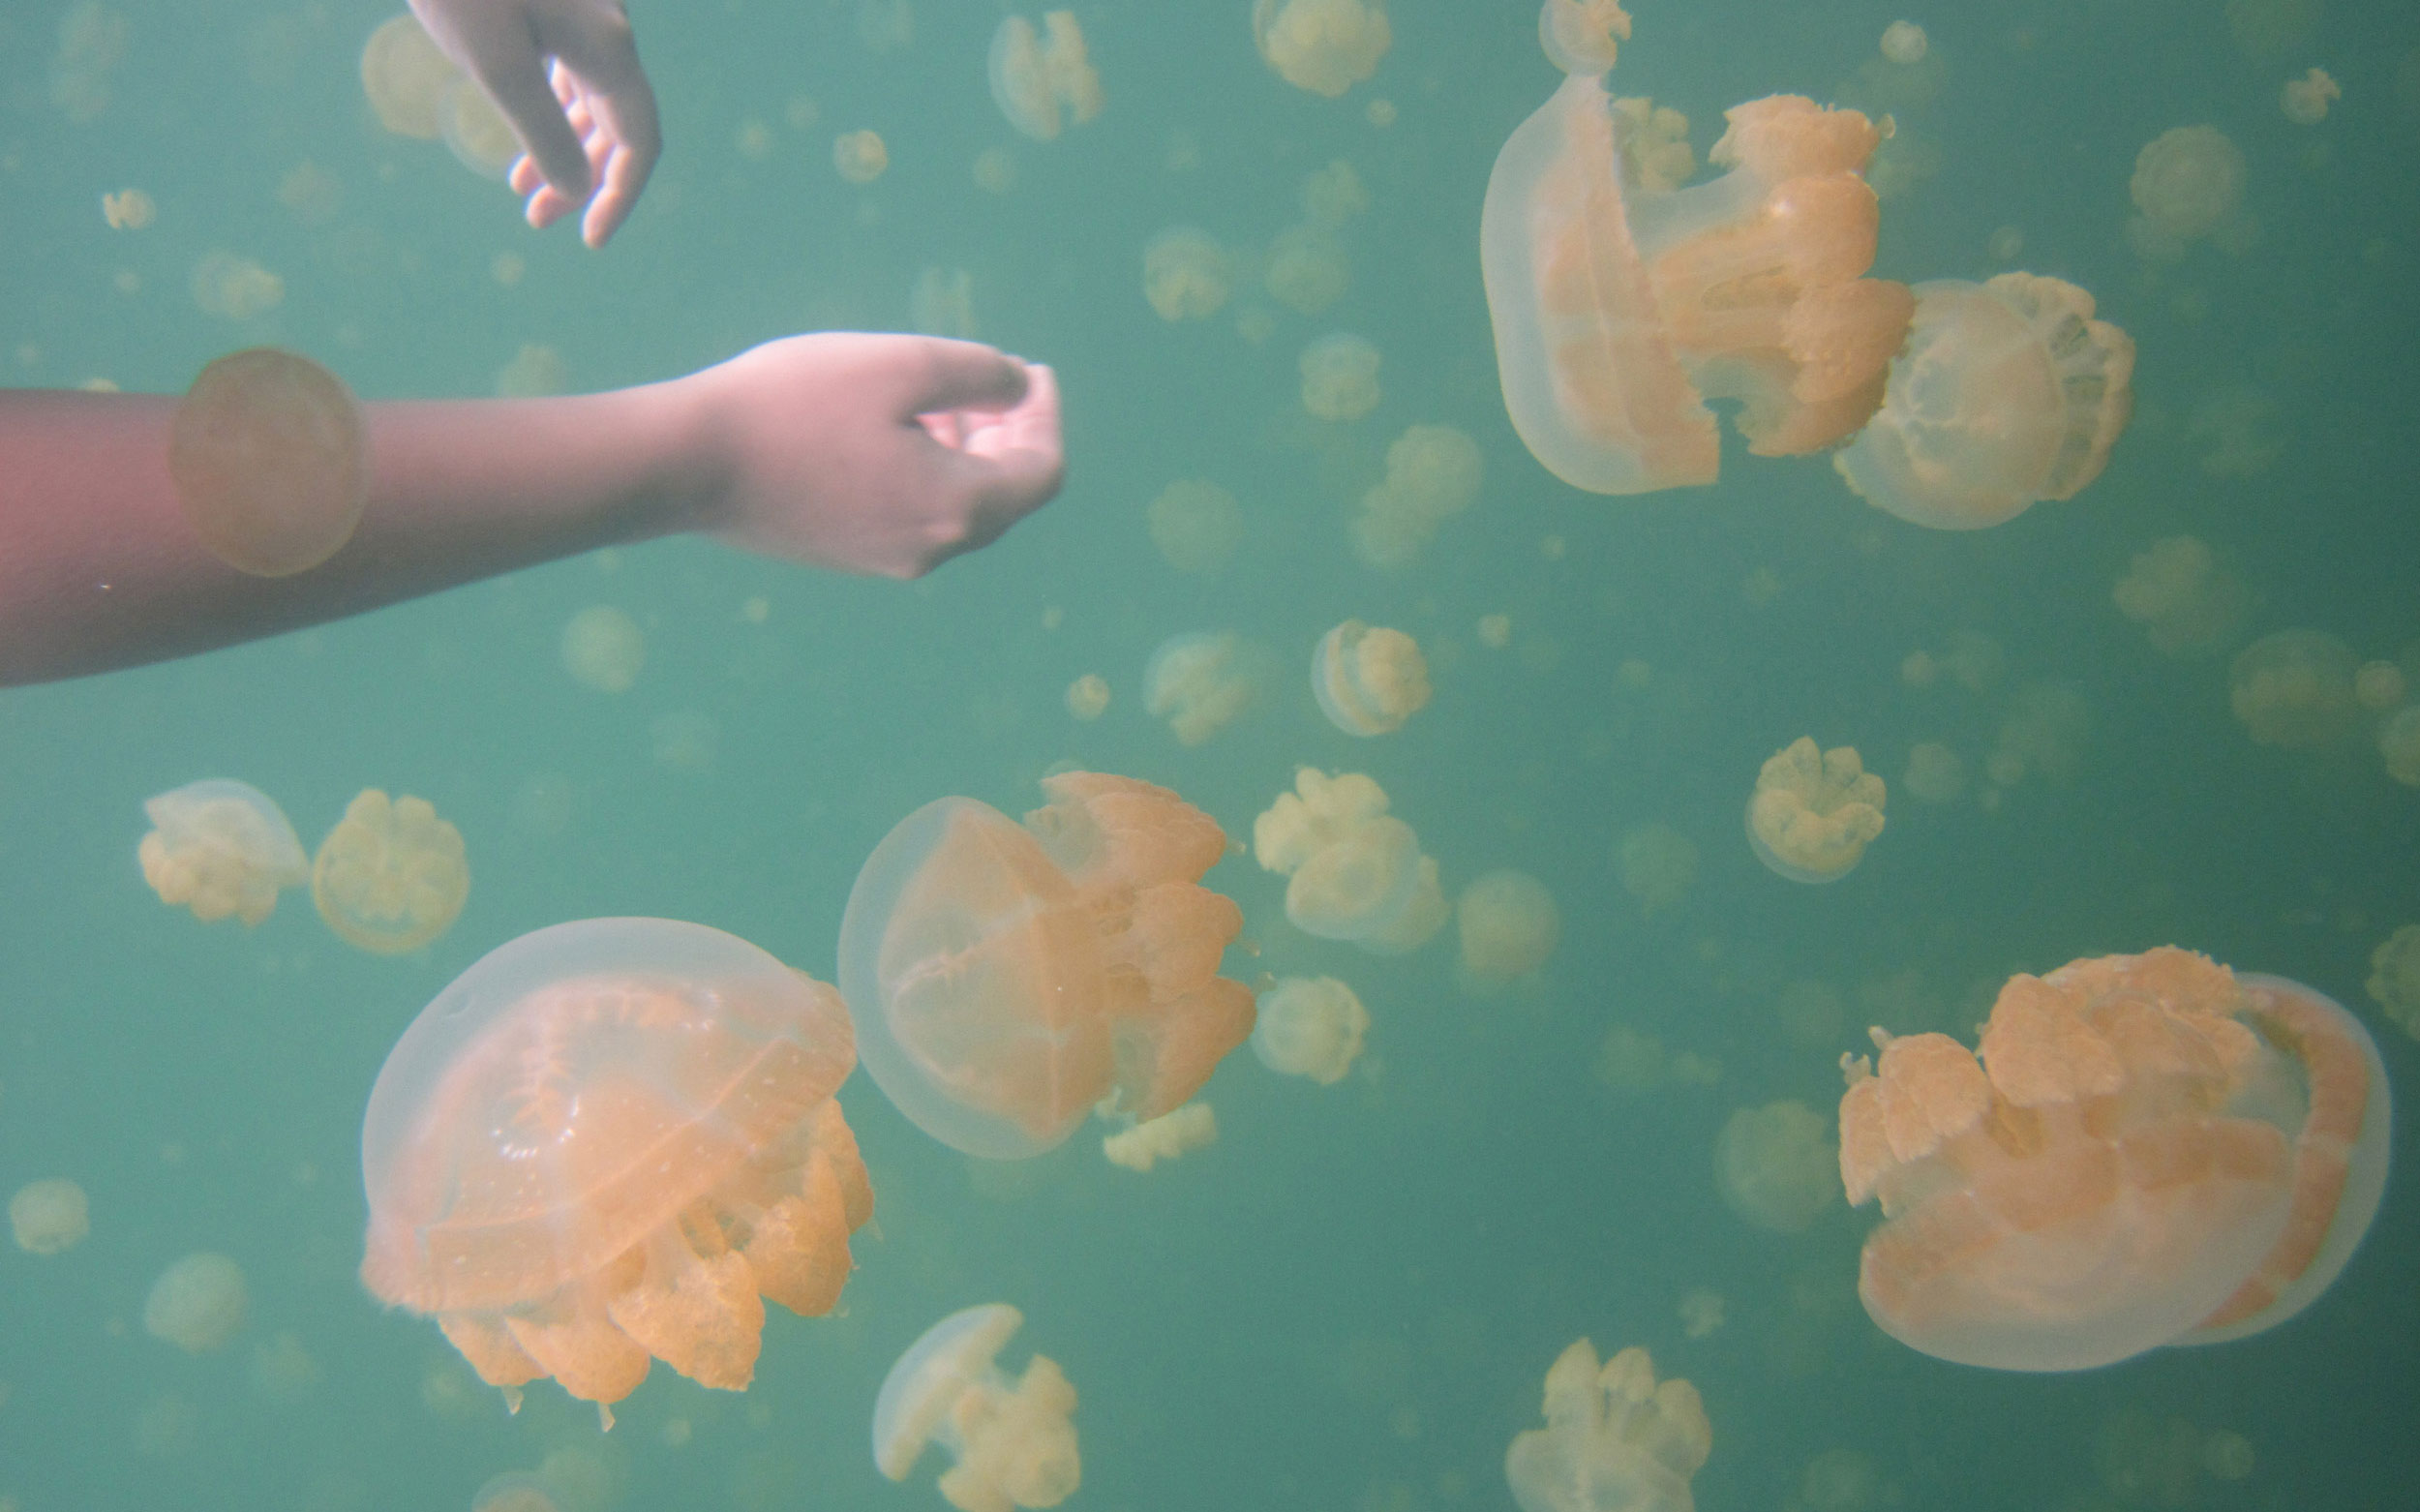 Jellyfish in Palau, whose unique ecosystem may be at risk due to climate change. Photo: anthonioo & Mei-Ling via Flickr Creative Commons.